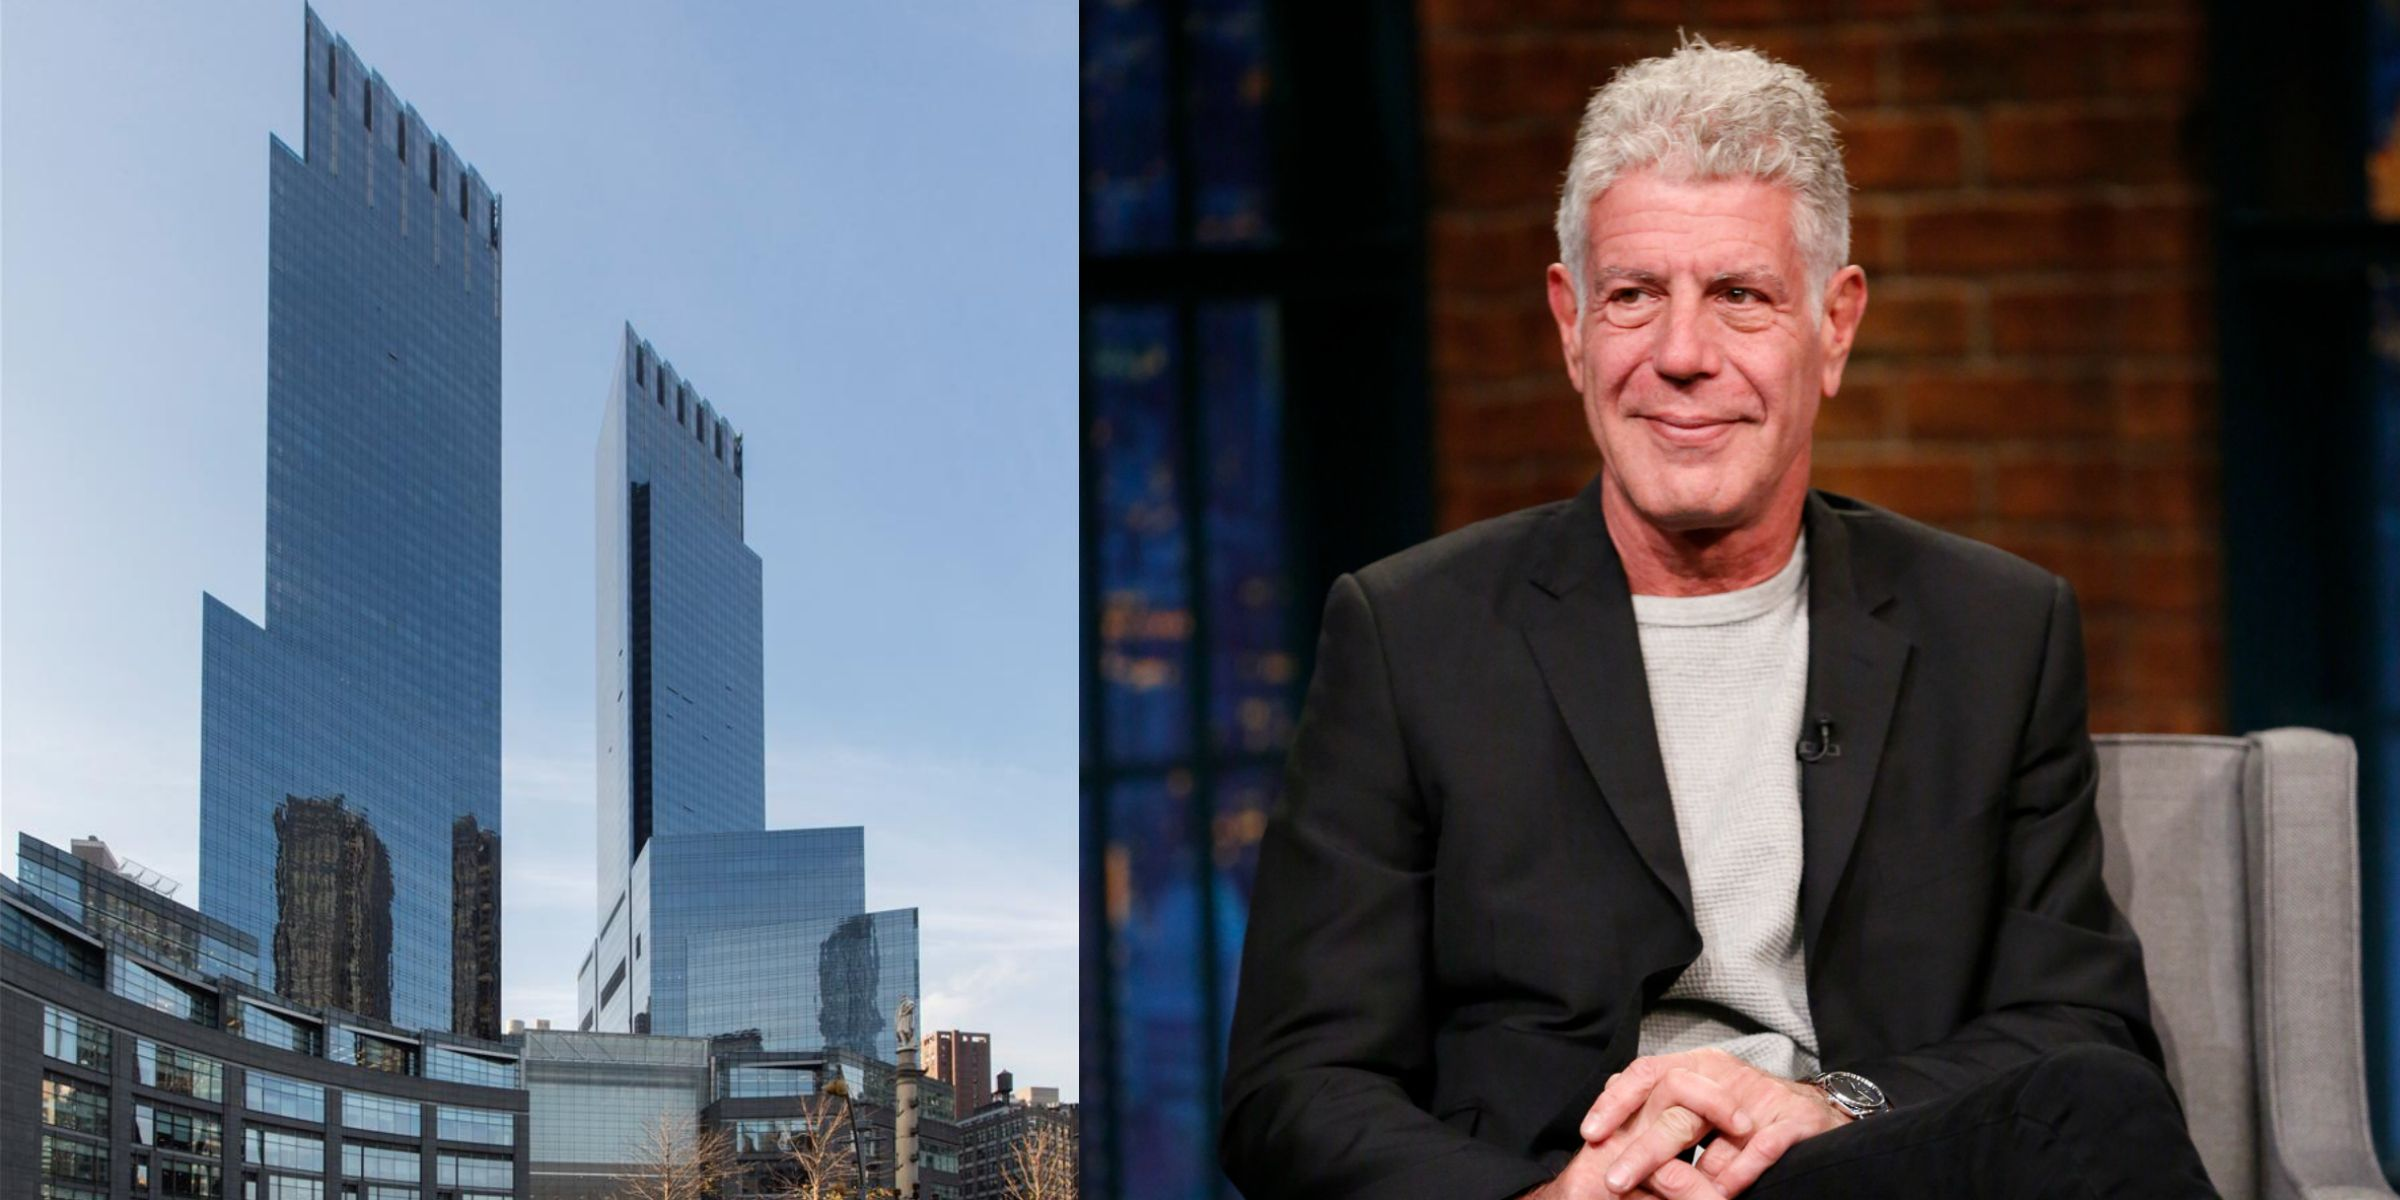 Anthony Bourdain's New York City Apartment Is On The Market For